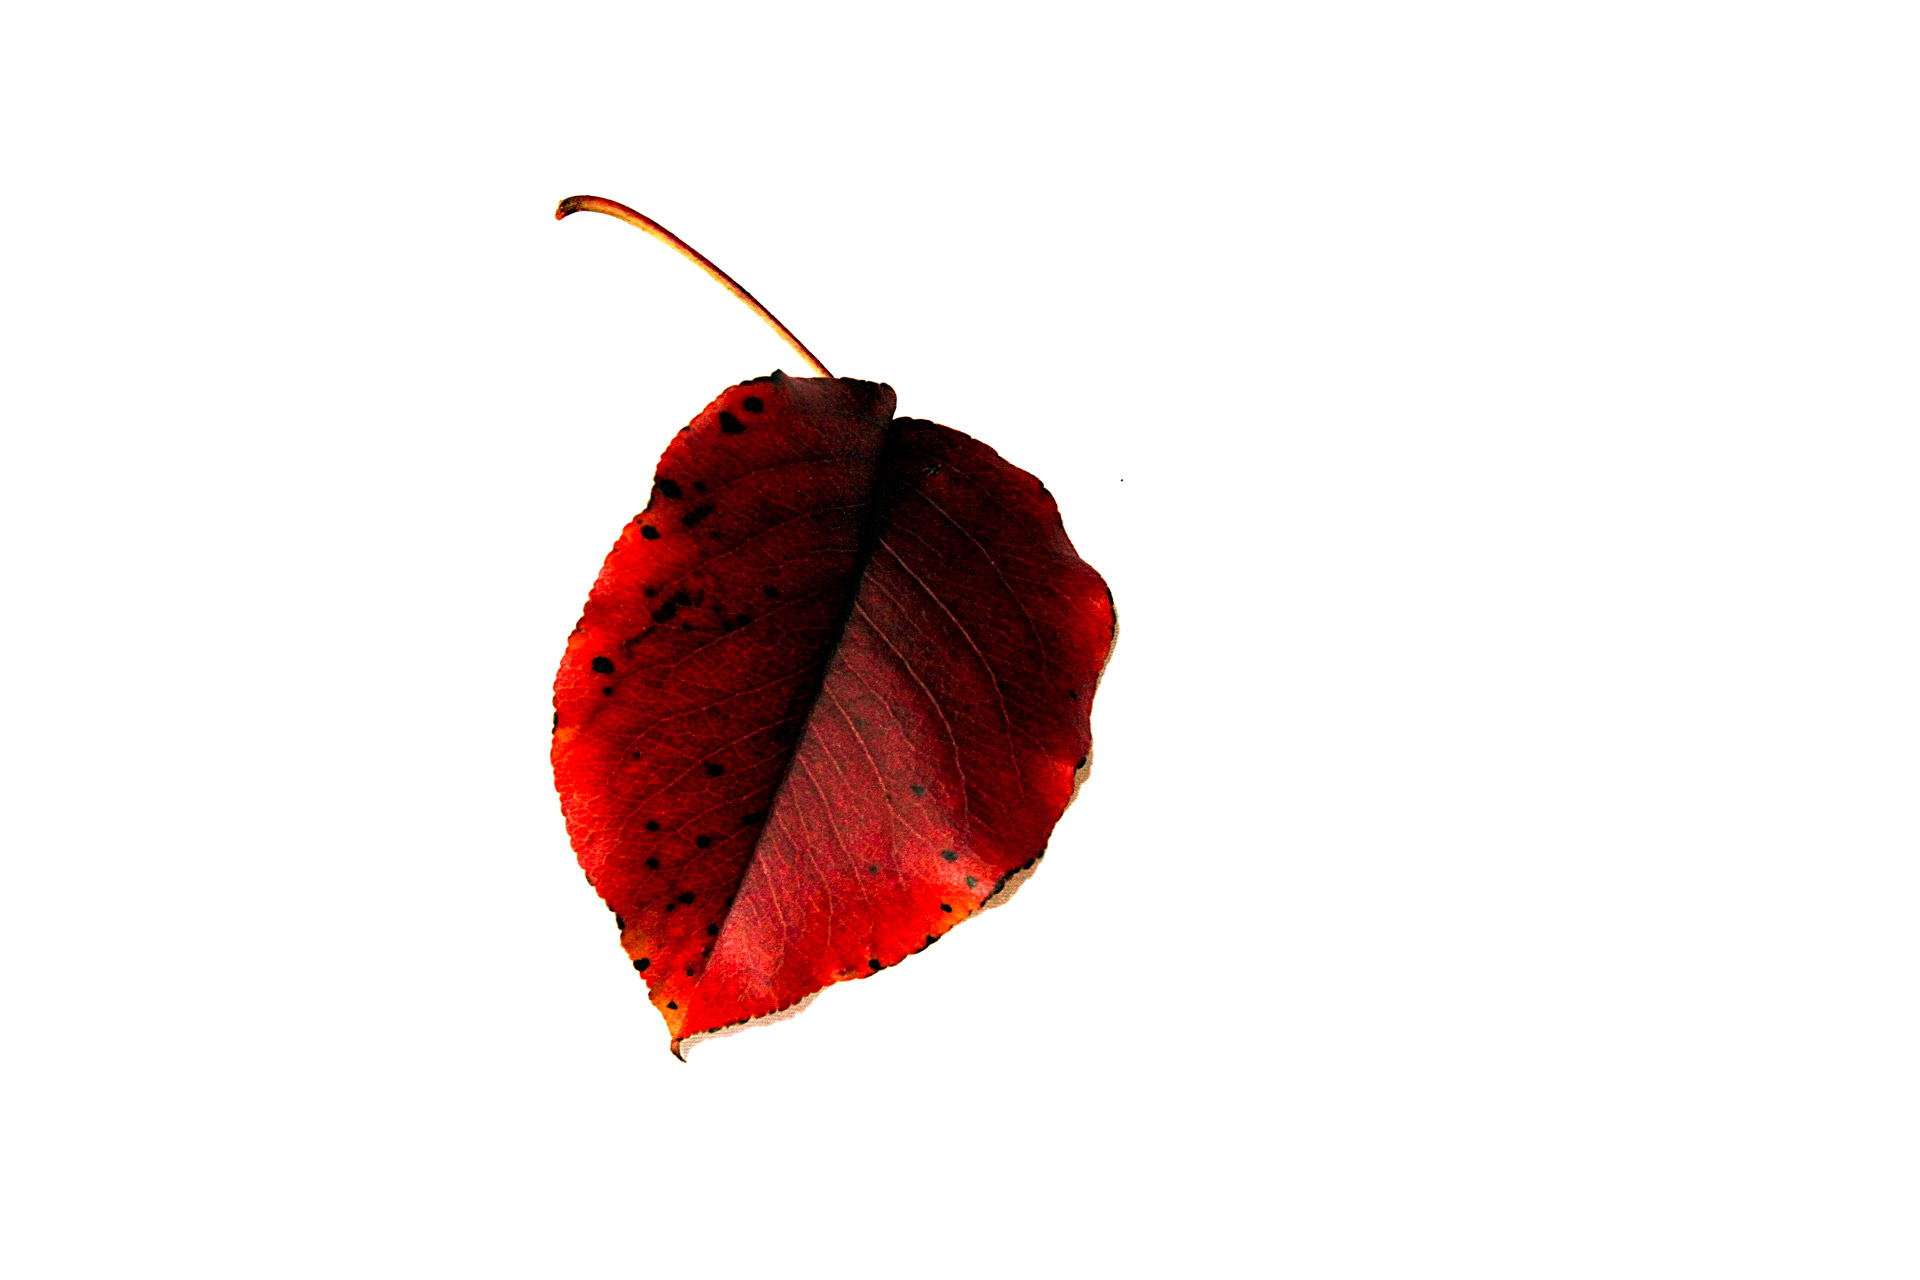 Red Leaf Free Stock Photo - Public Domain Pictures